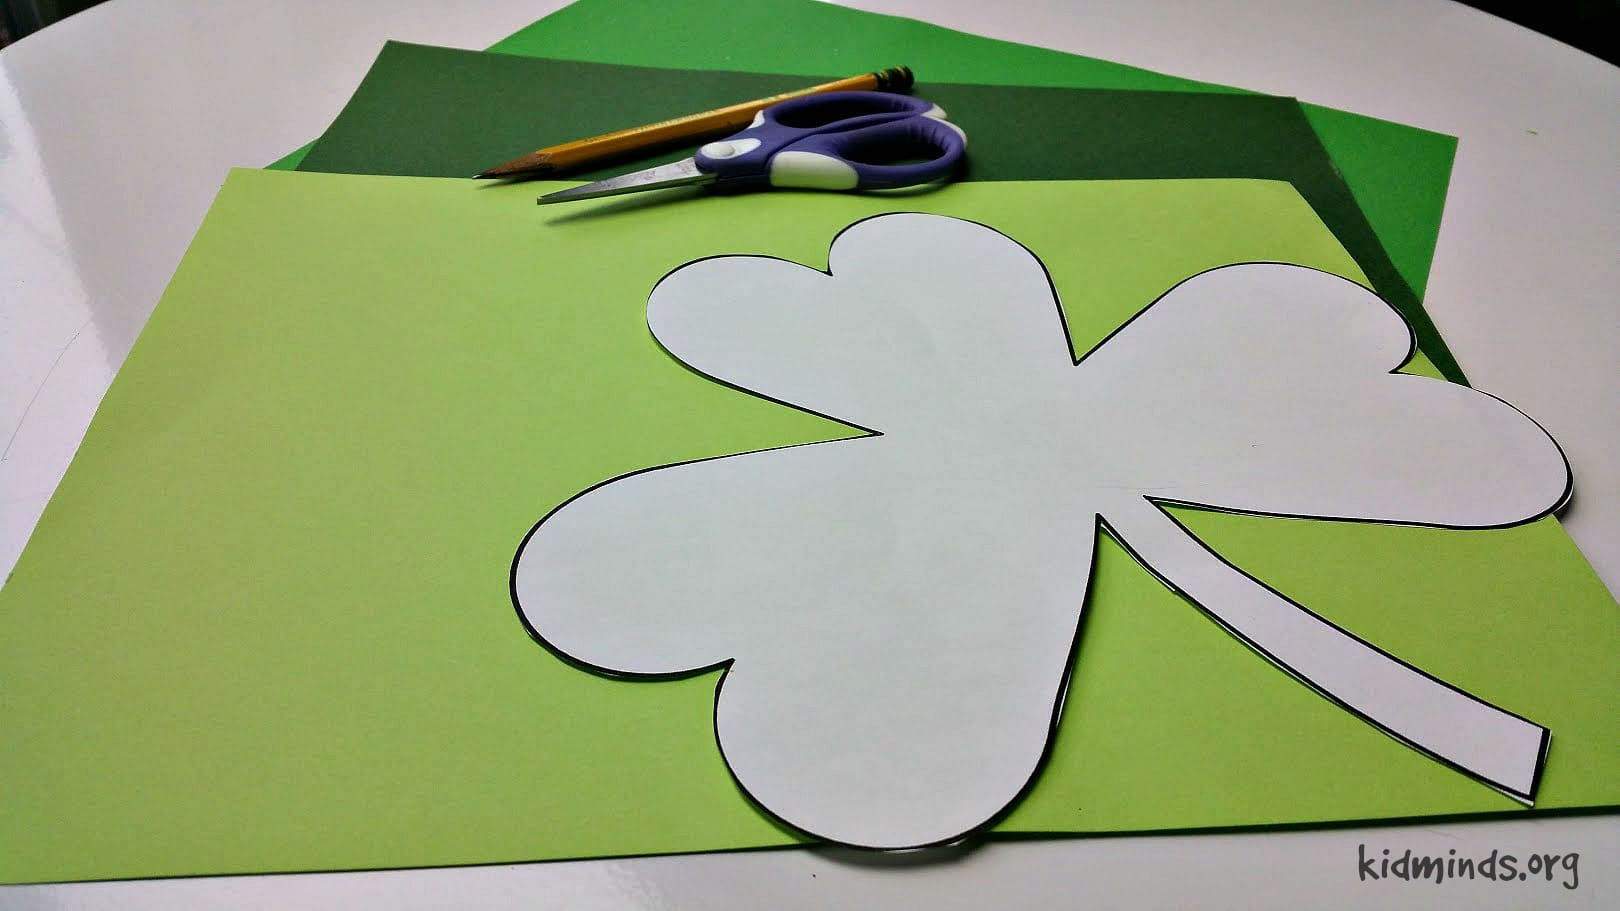 Irish Luck St. Patrick's Day Counting Game to practice early math skill #homeschool #kids #math